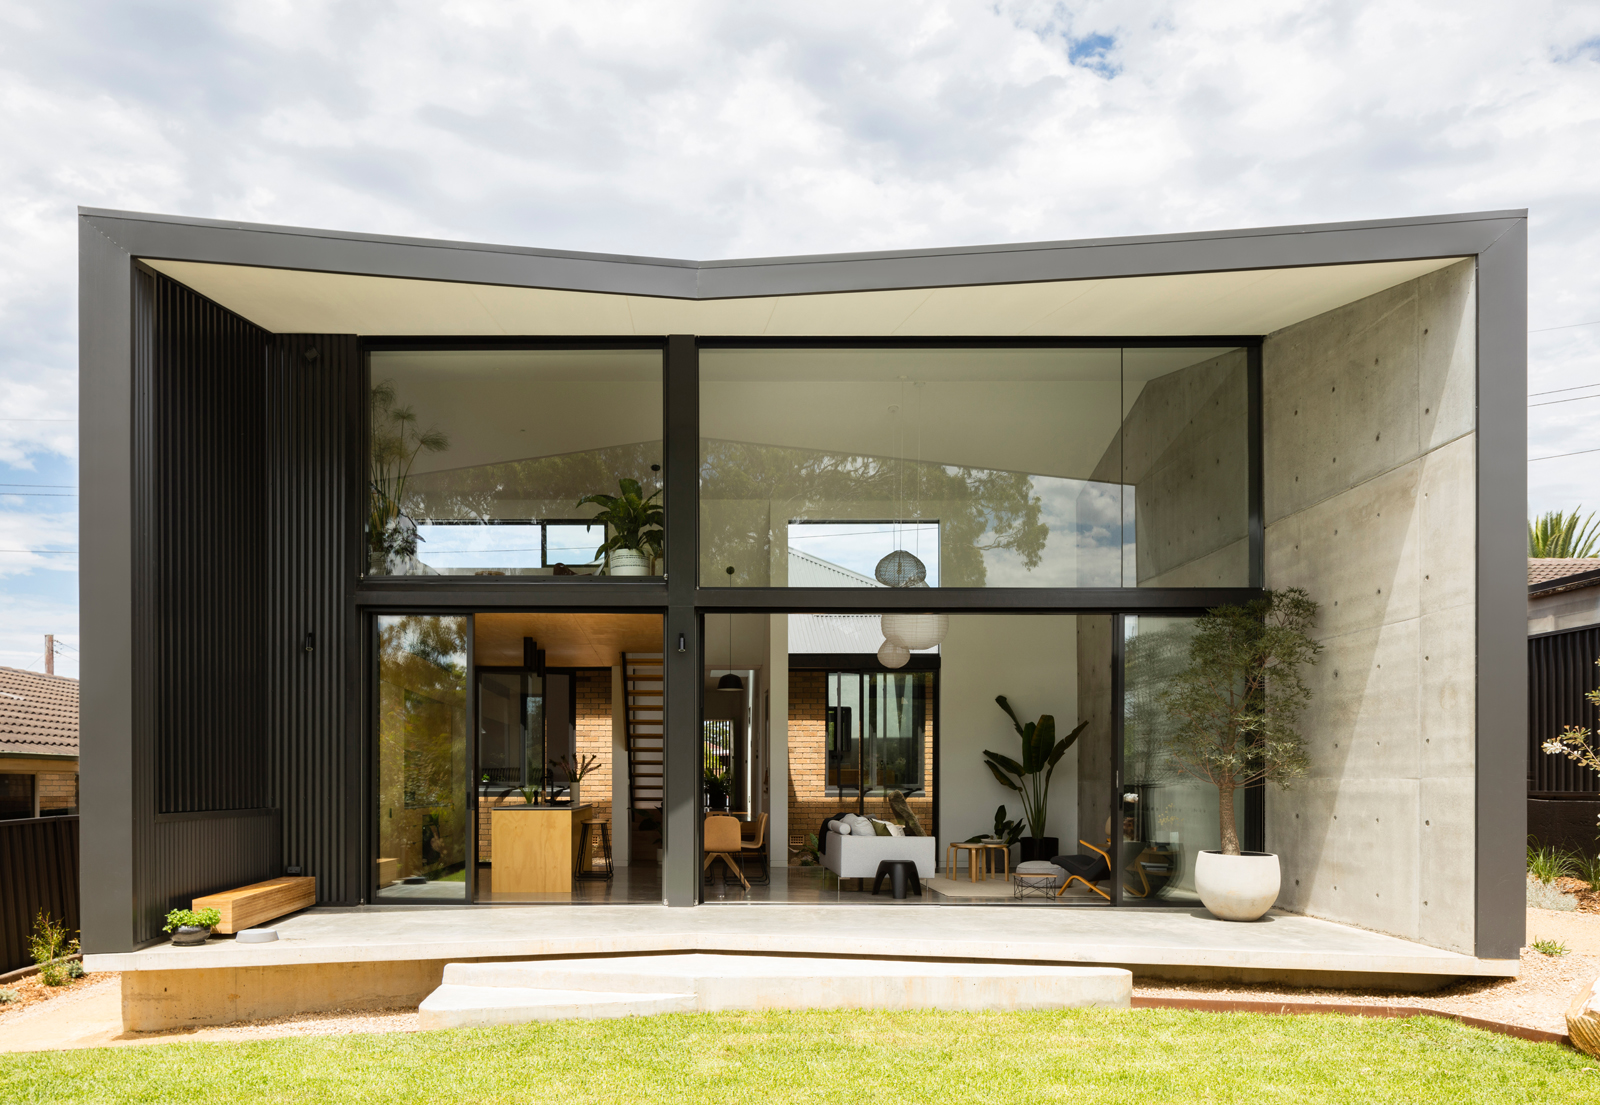 Gallery Of Binary House By Christopher Polly Architect Local Australian Design And Interiors Woolooware, Nsw Image 7